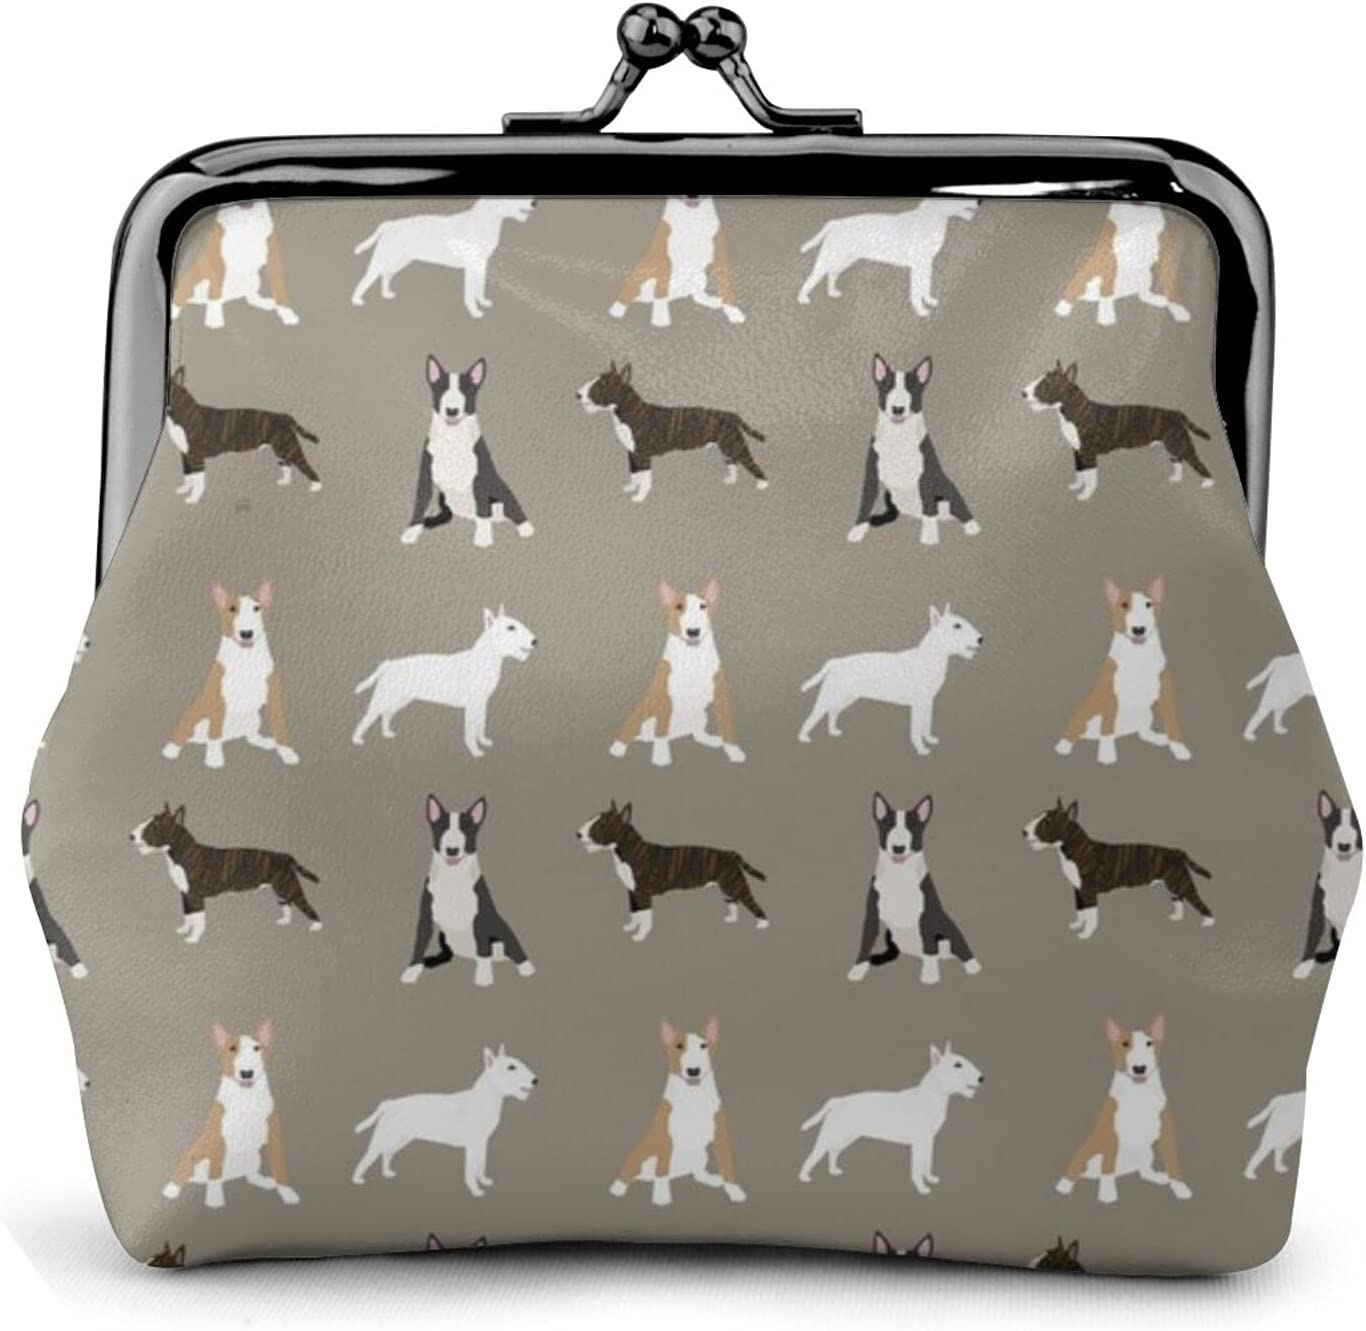 Bull Terrier Mixed 1308 Coin Purse Retro Money Pouch with Kiss-lock Buckle Small Wallet for Women and Girls